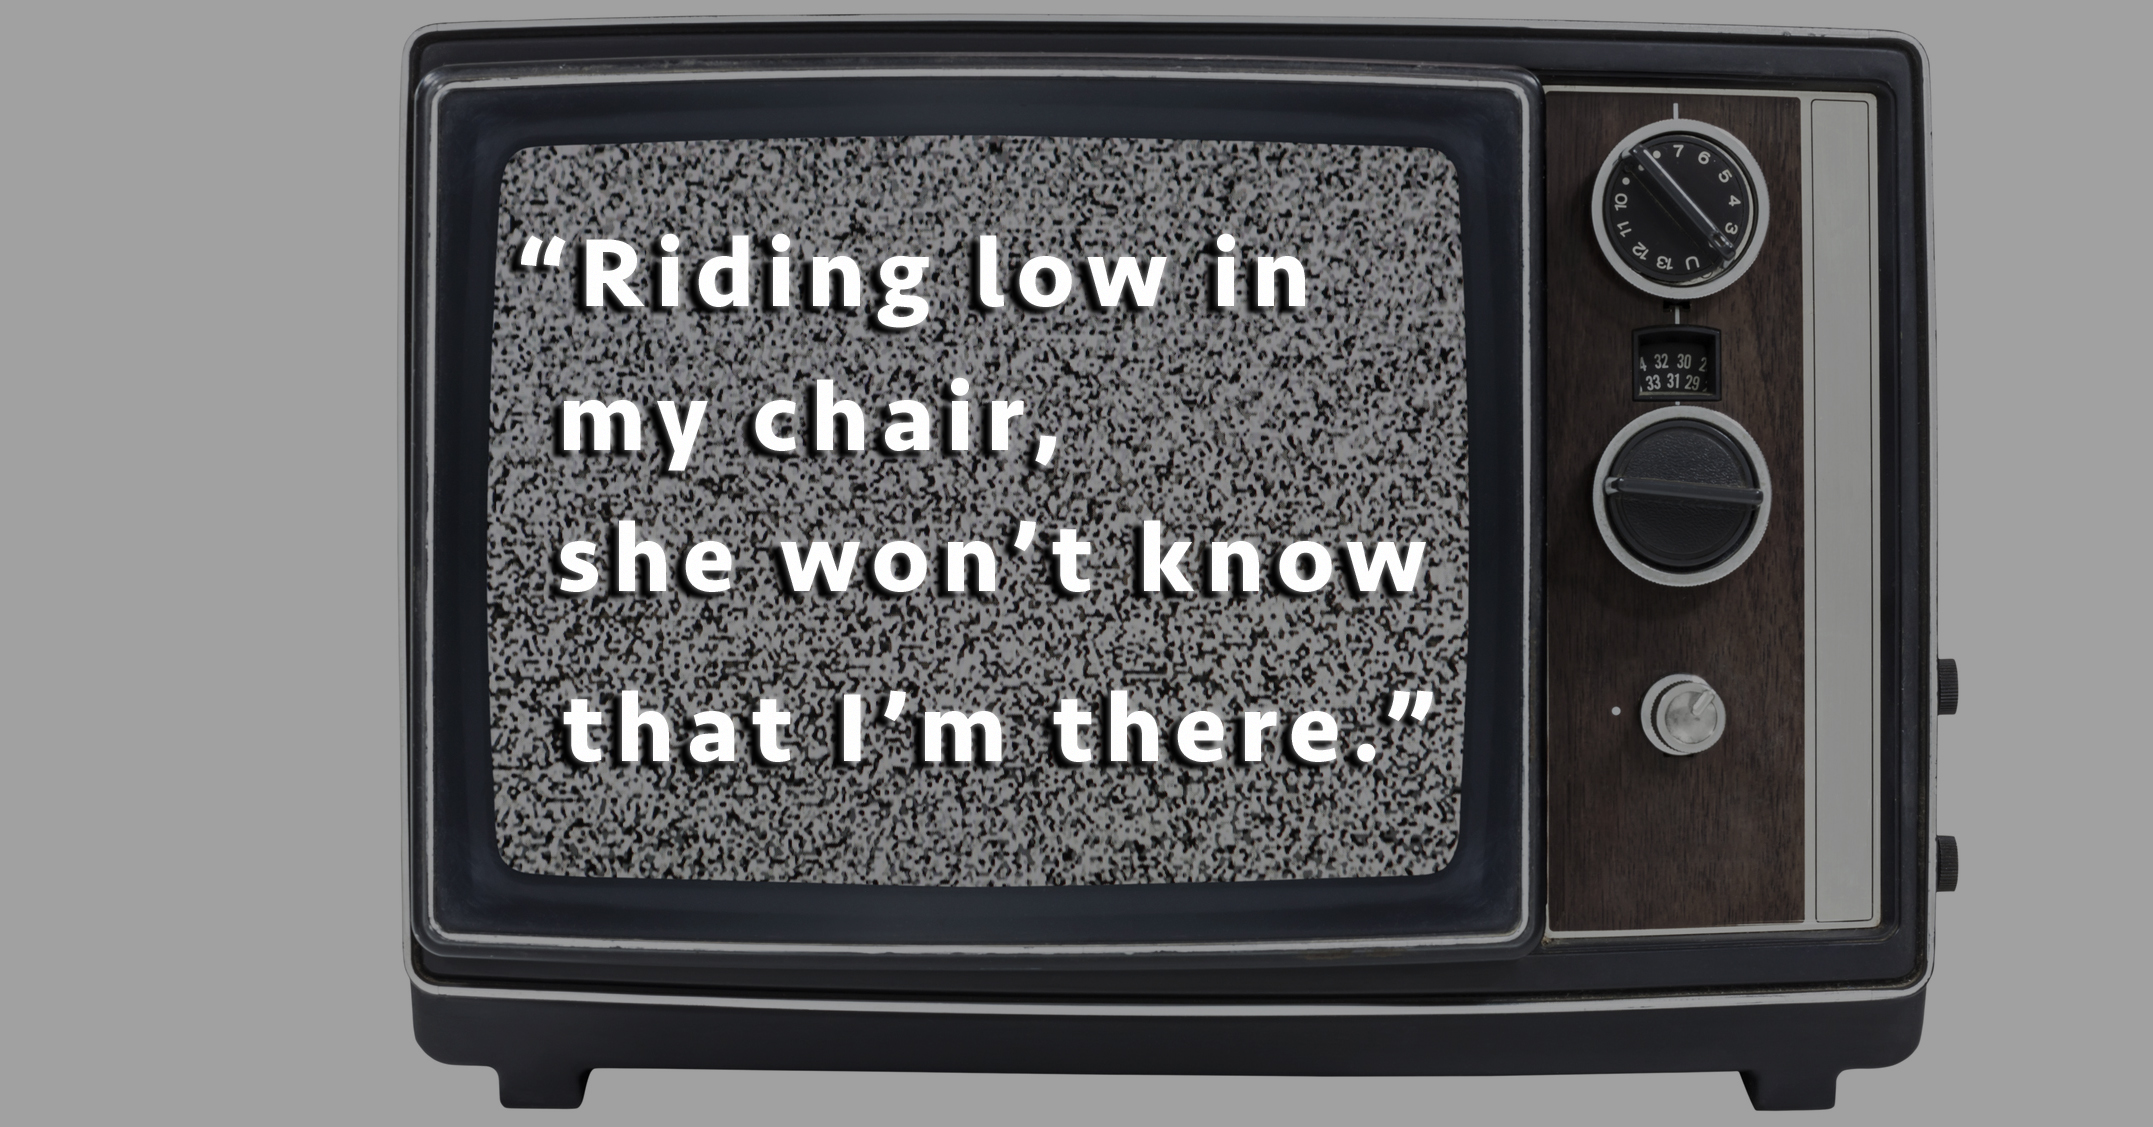 Which TV Theme Songs Featured These Lyrics?